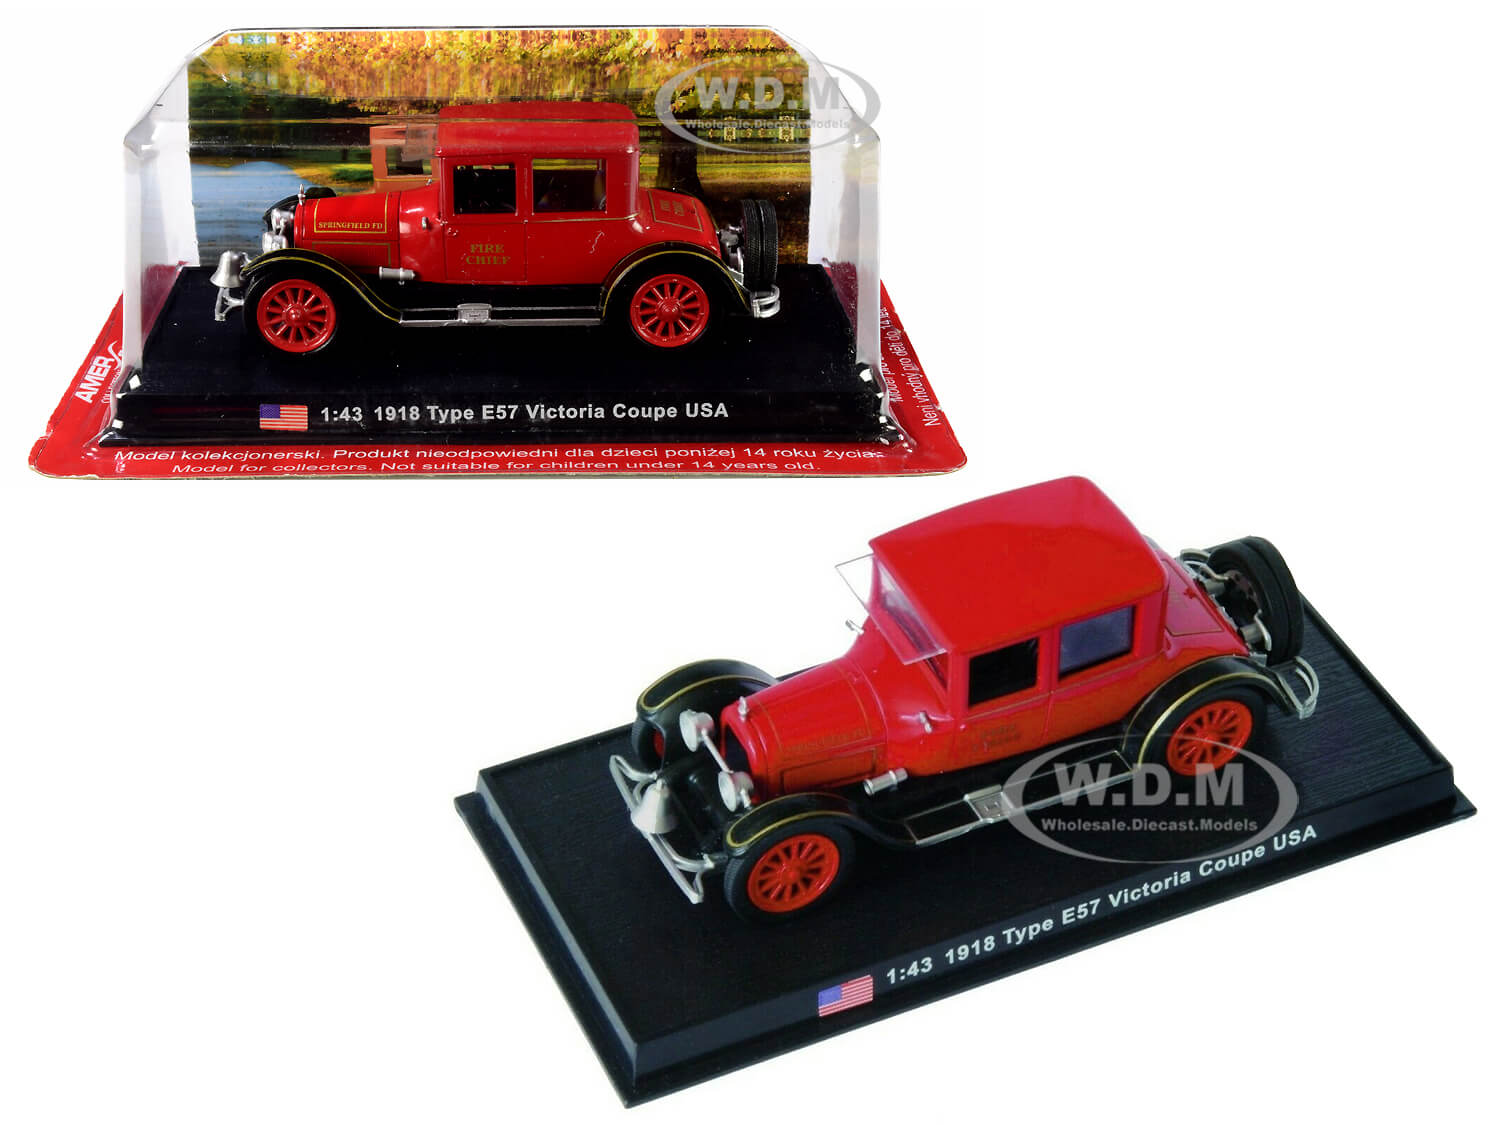 1918 Cadillac Type E57 Victoria Coupe Fire Chief 1/43 Diecast Model Car by Amercom